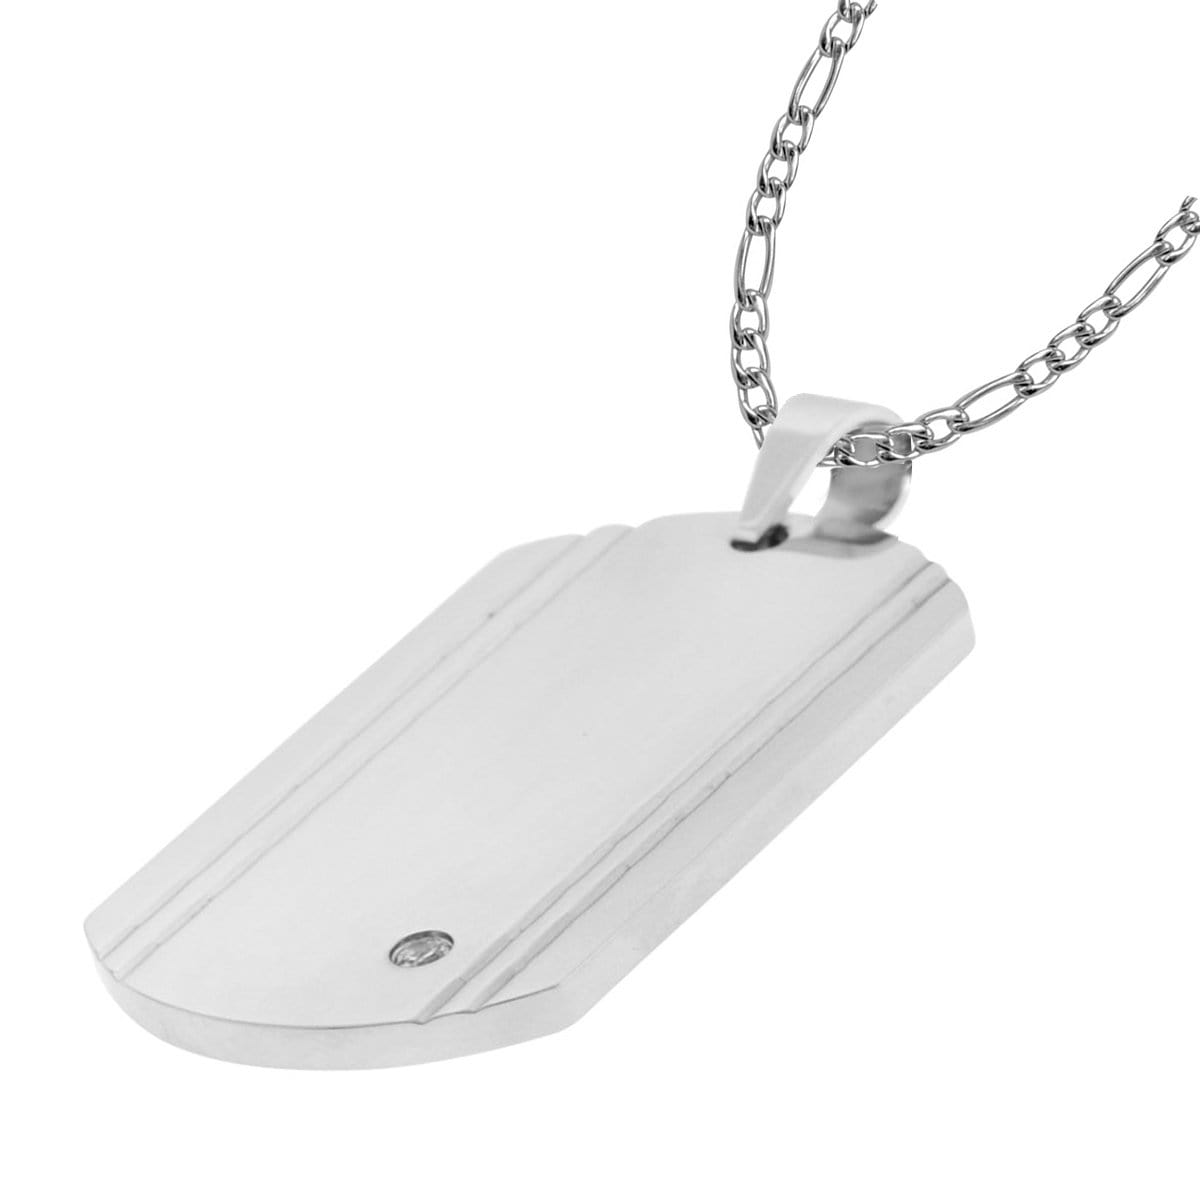 Silver Stainless Steel with CZ Accent Engraveable Dog Tag Pendant